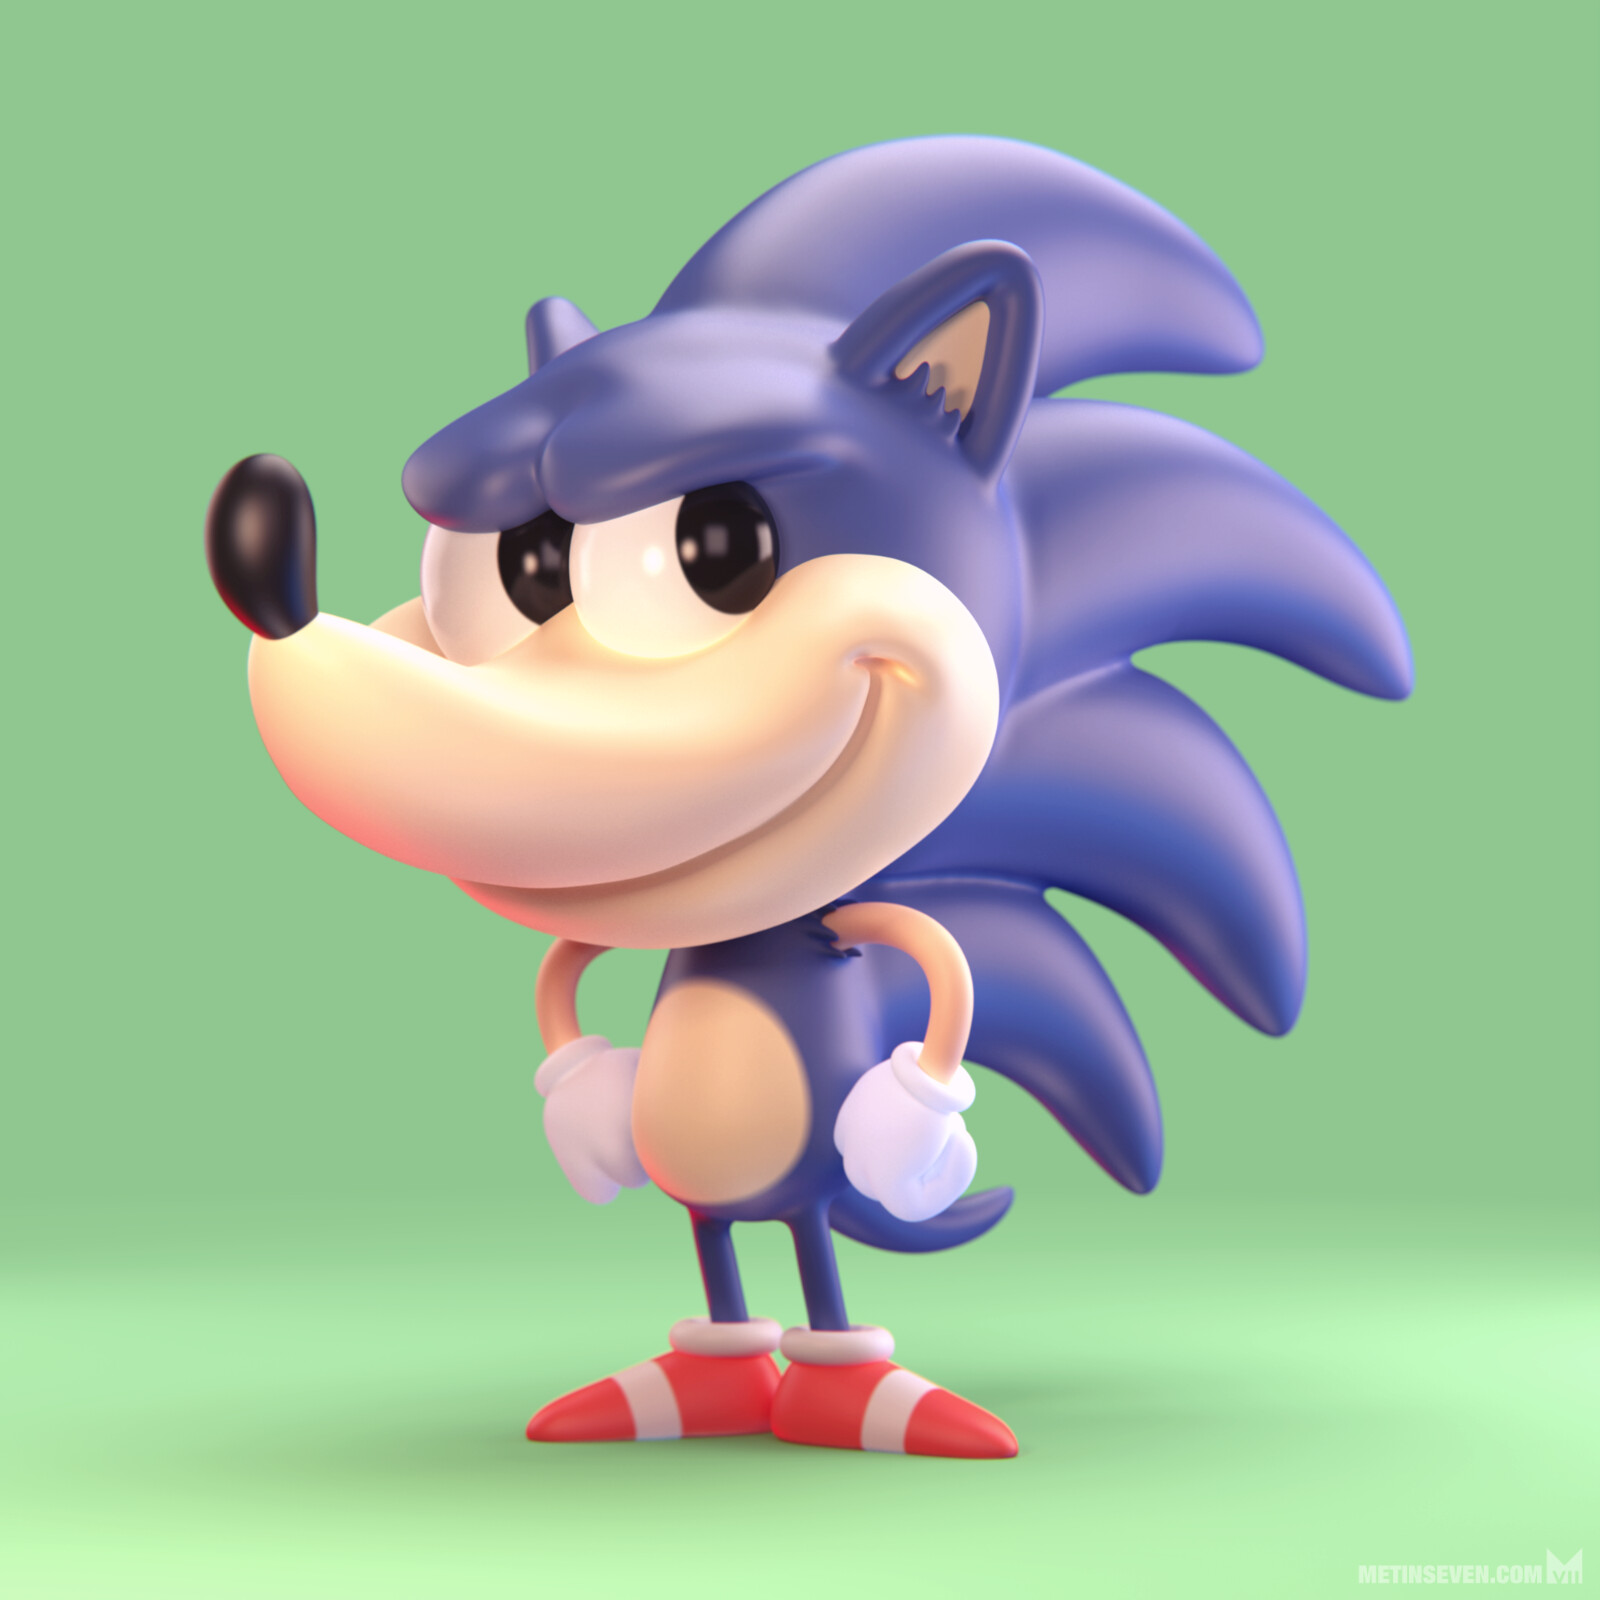 Sonic the Hedgehog 🦔 | Based on a drawing by Craig Seagreen